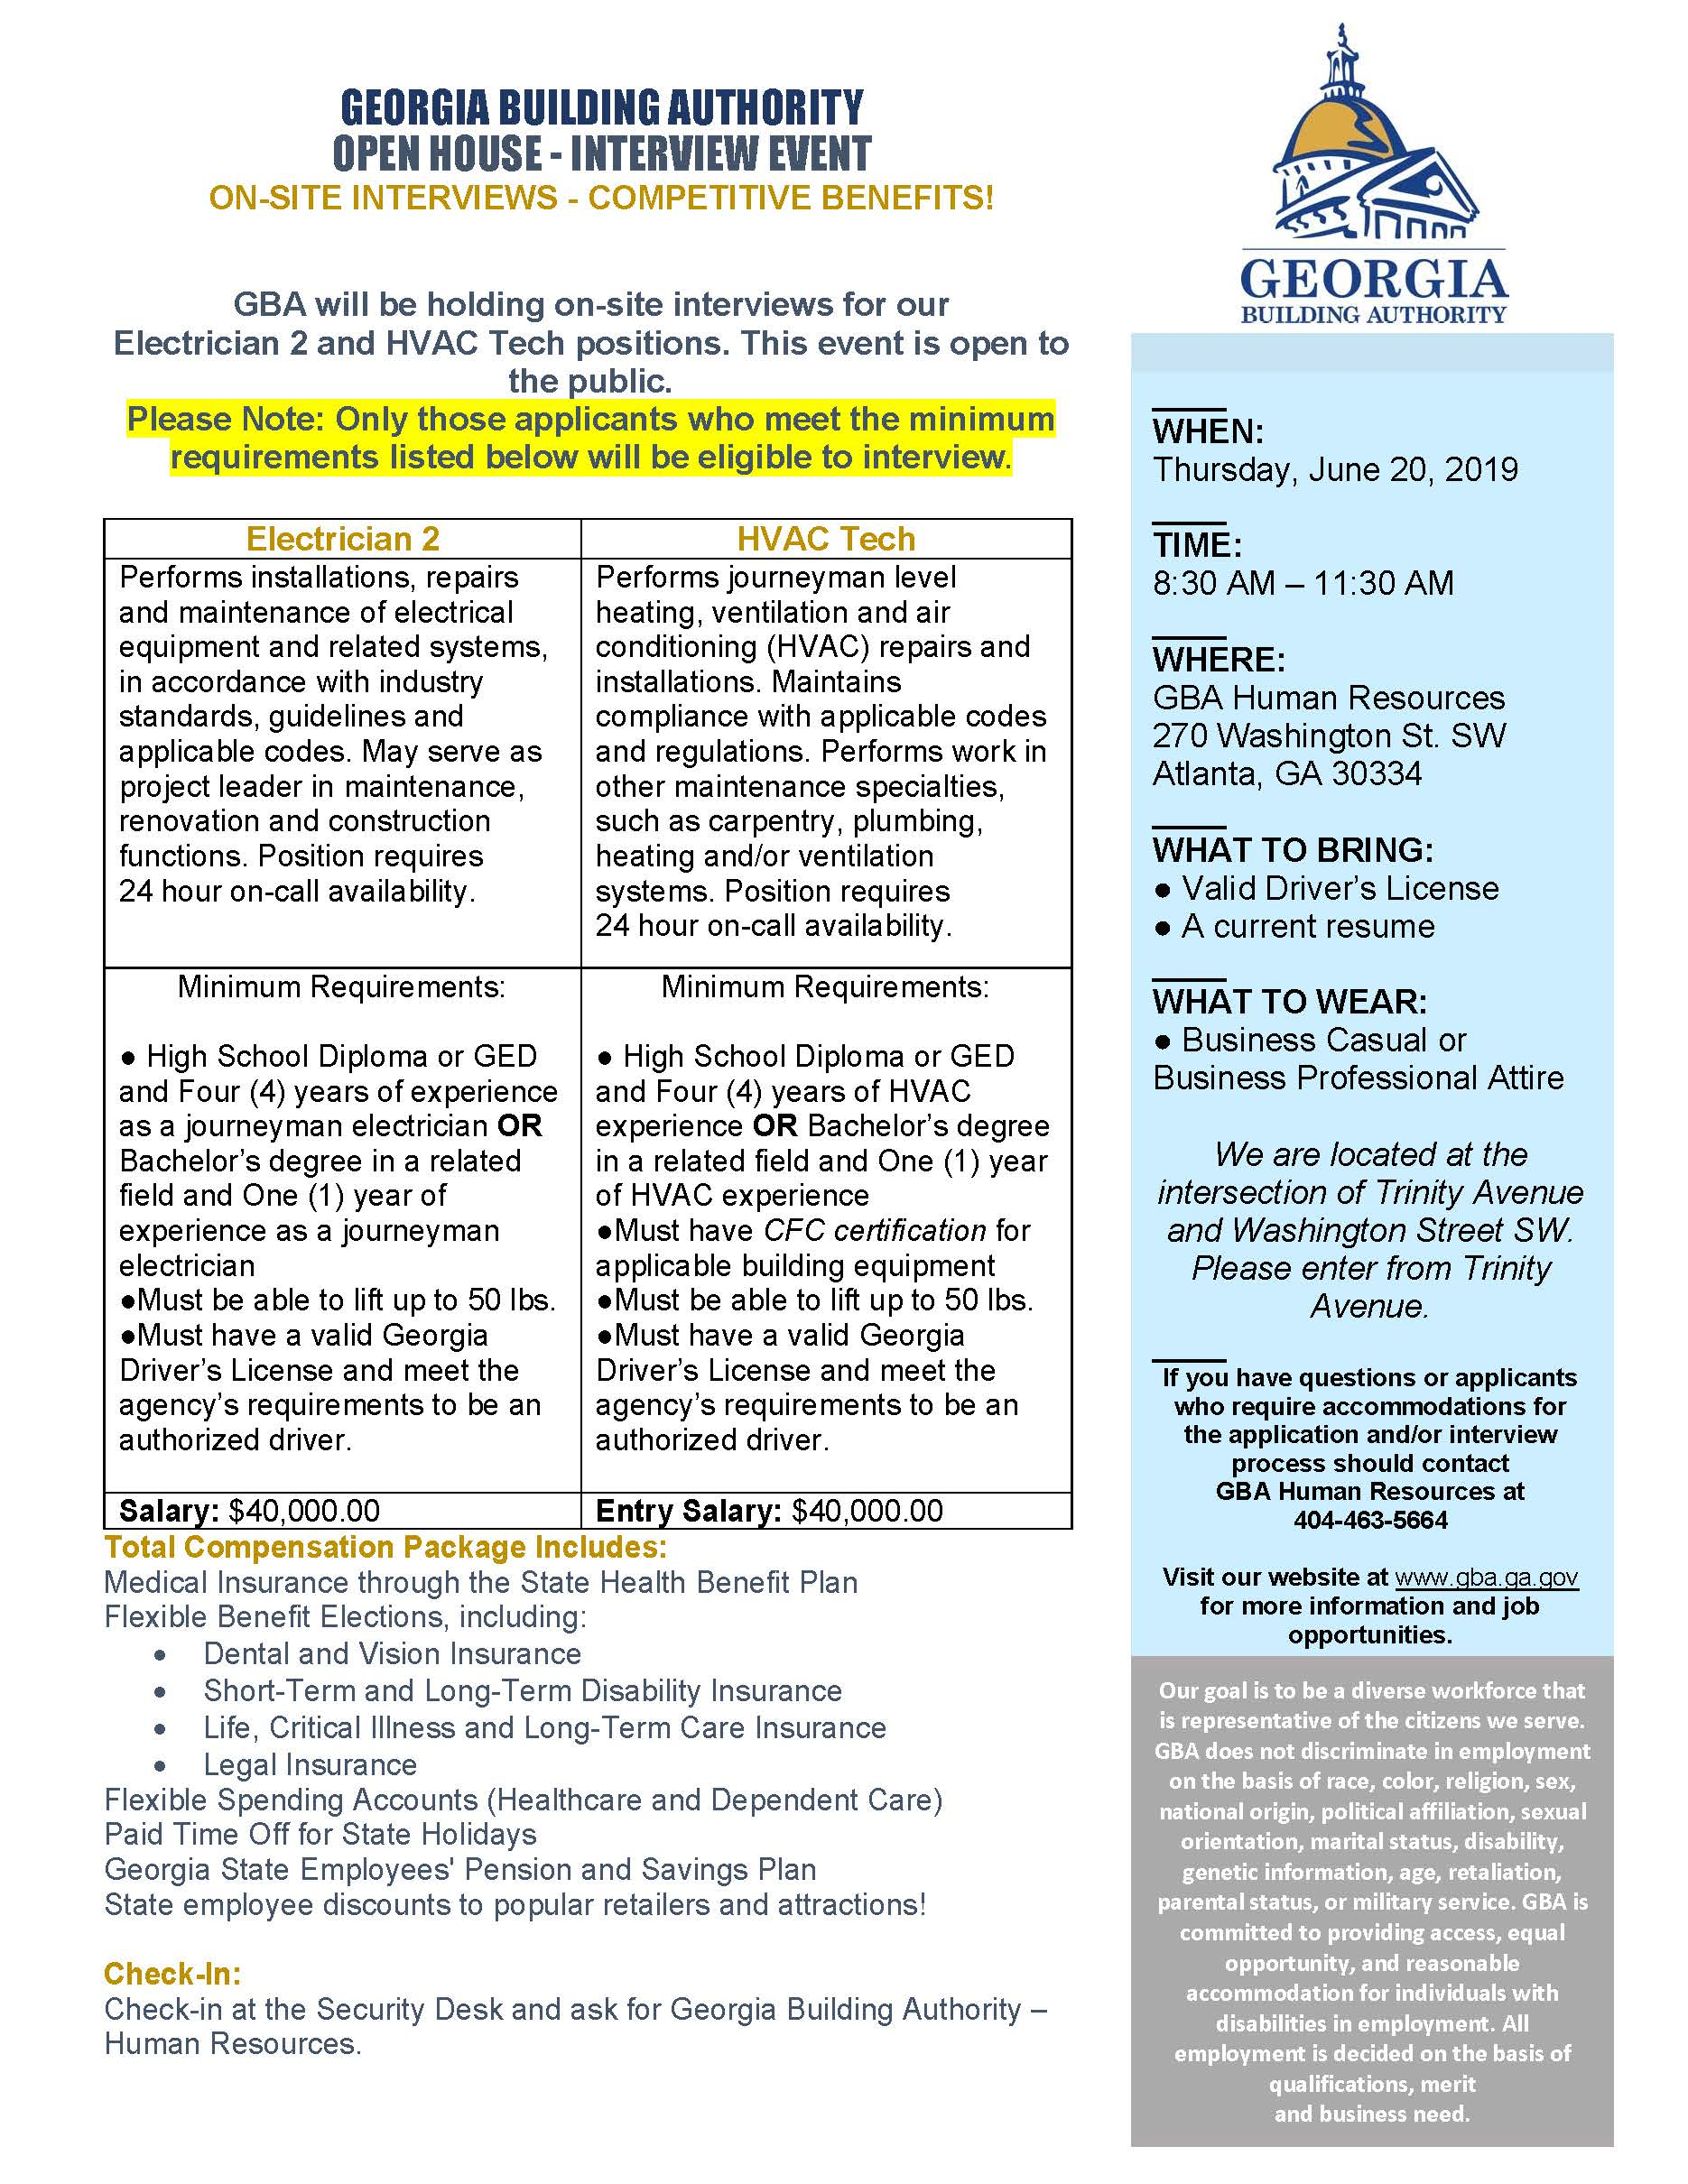 GEORGIA BUILDING AUTHORITY OPEN HOUSE – INTERVIEW EVENT